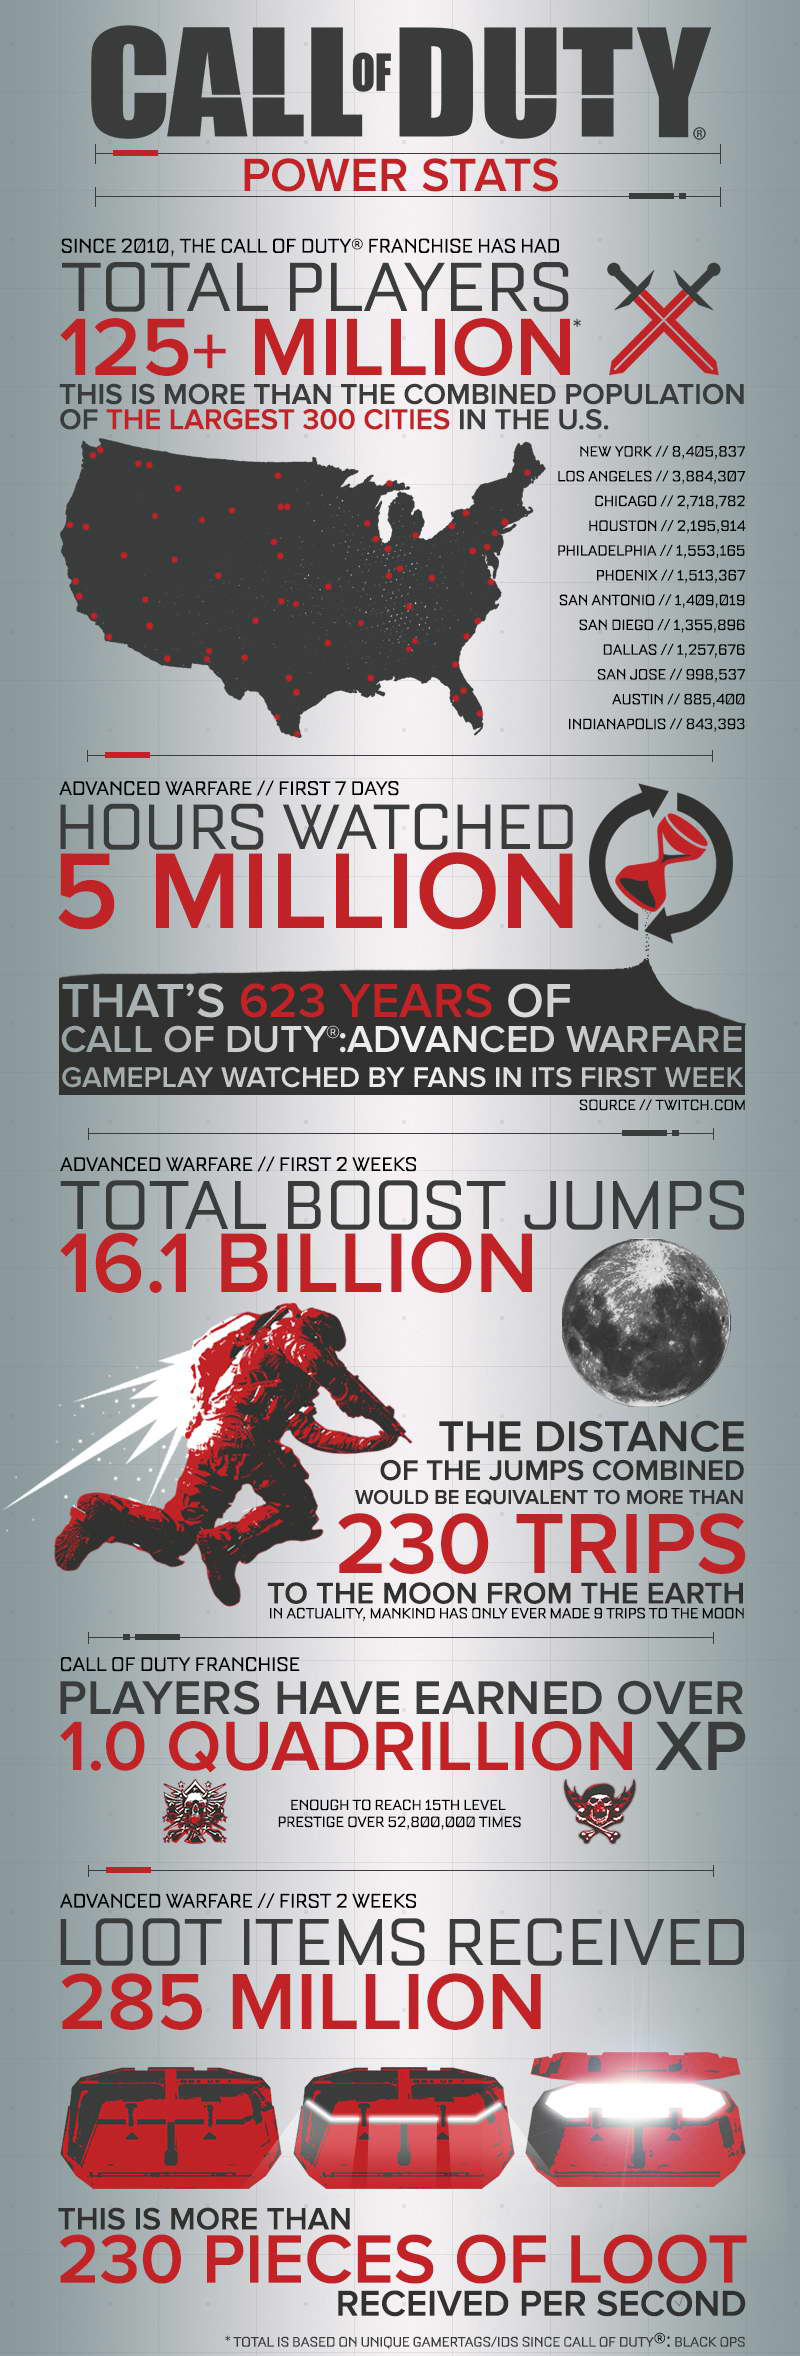 call-of-duty-infographic-01